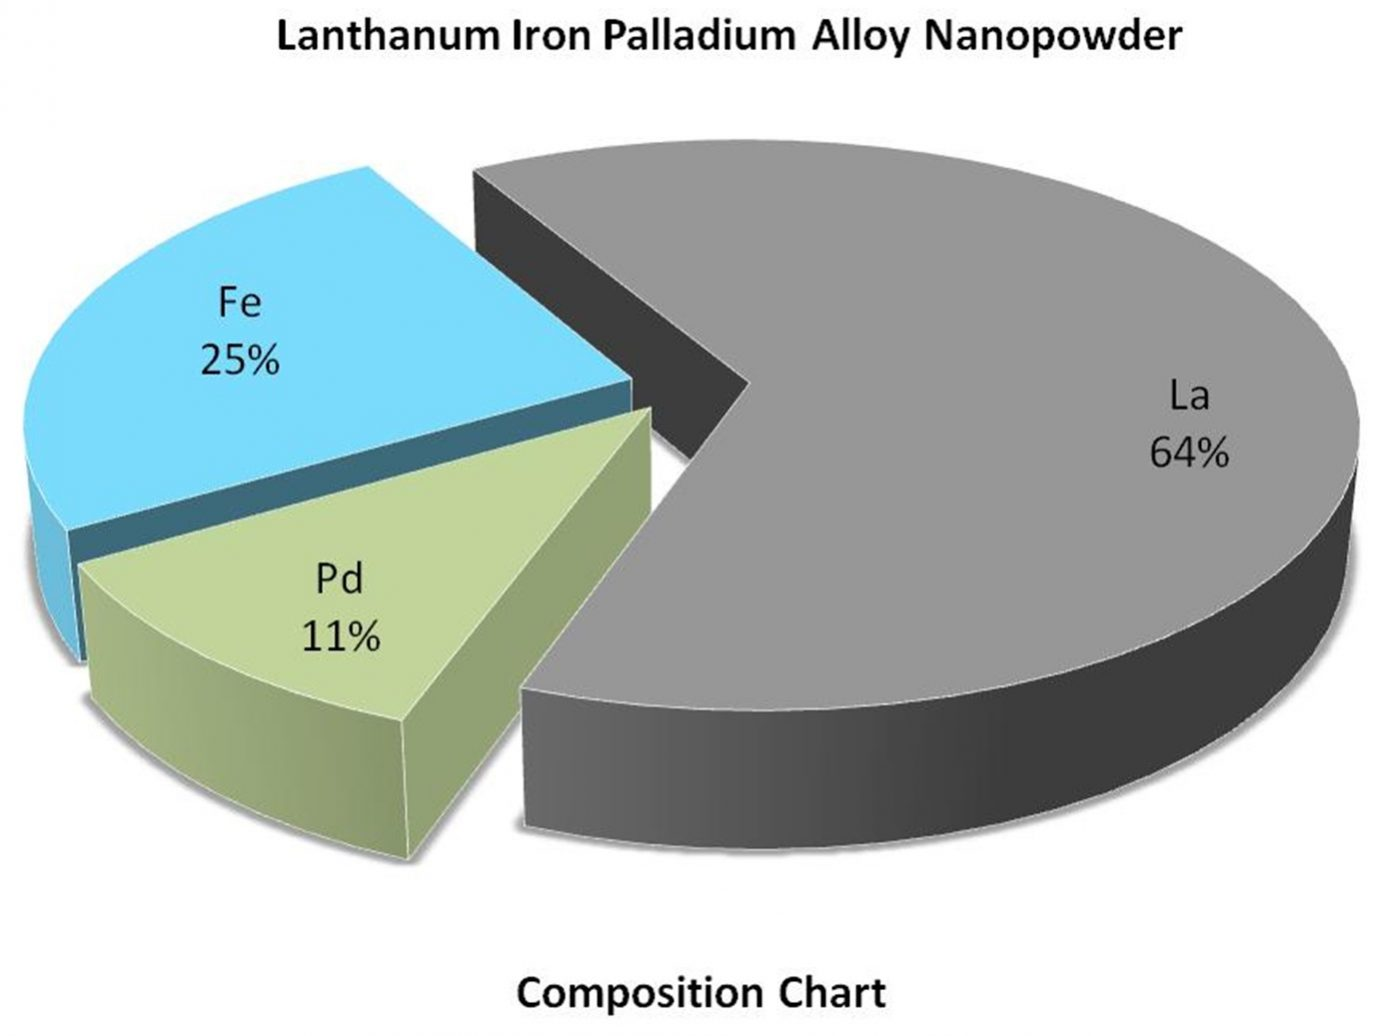 Composition Chart - La:Fe:Pd Alloy Nanoparticles